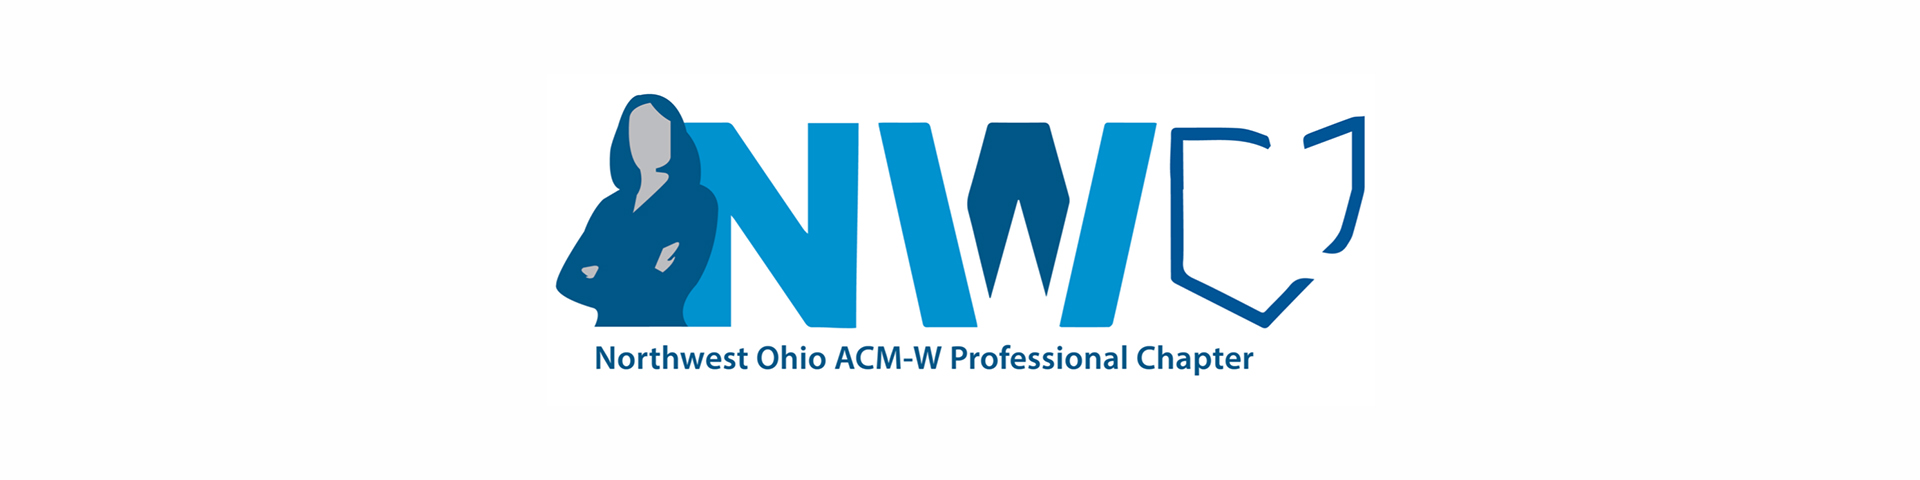 Northwest Ohio ACM-W Chapter Logo